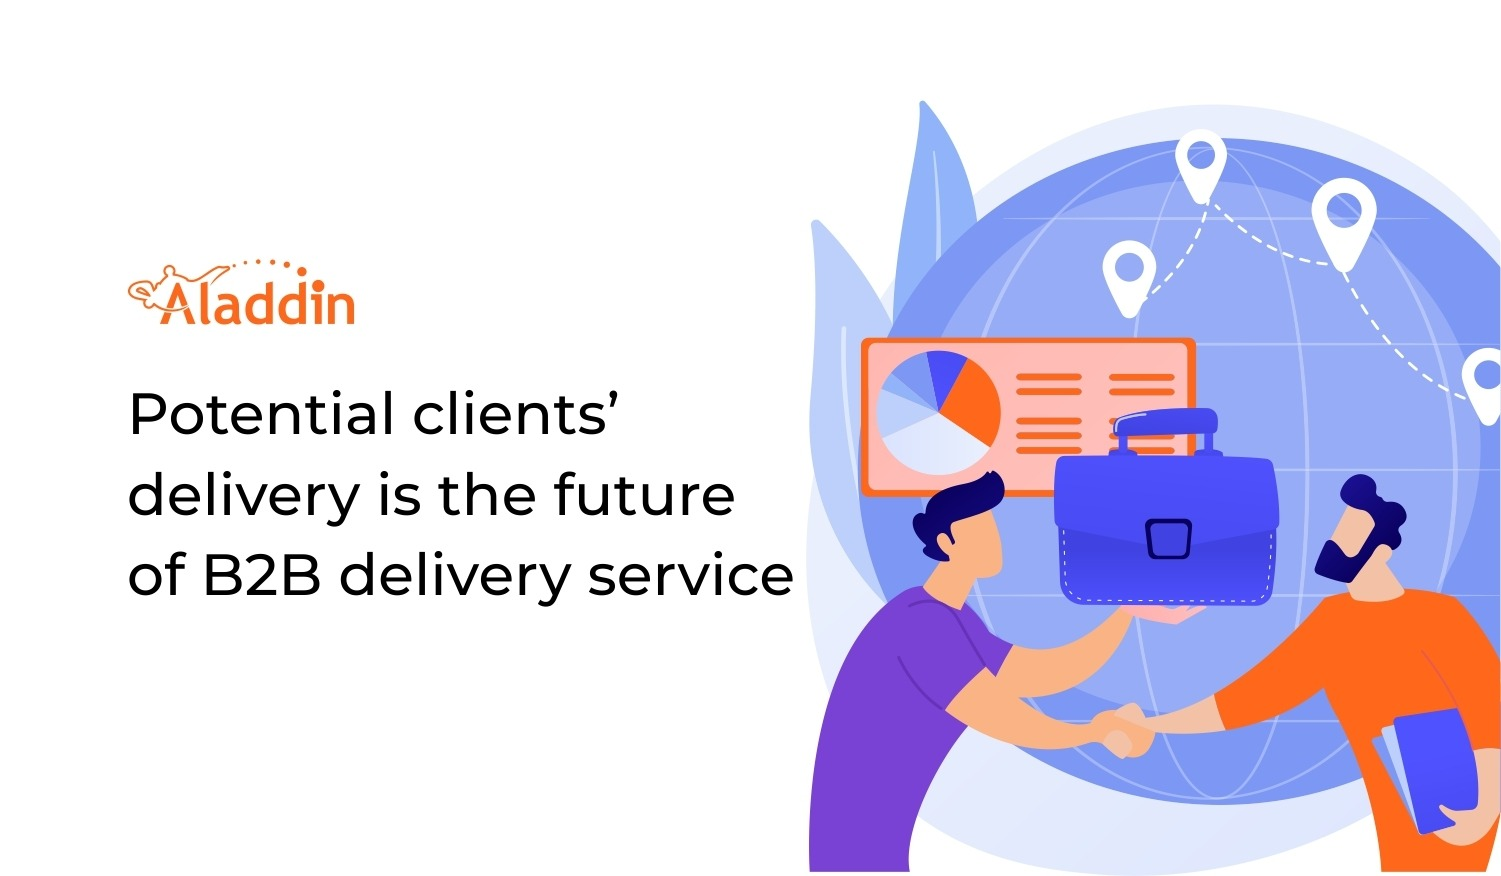 Potential Clients' Delivery Is The Future Of B2B Delivery Service